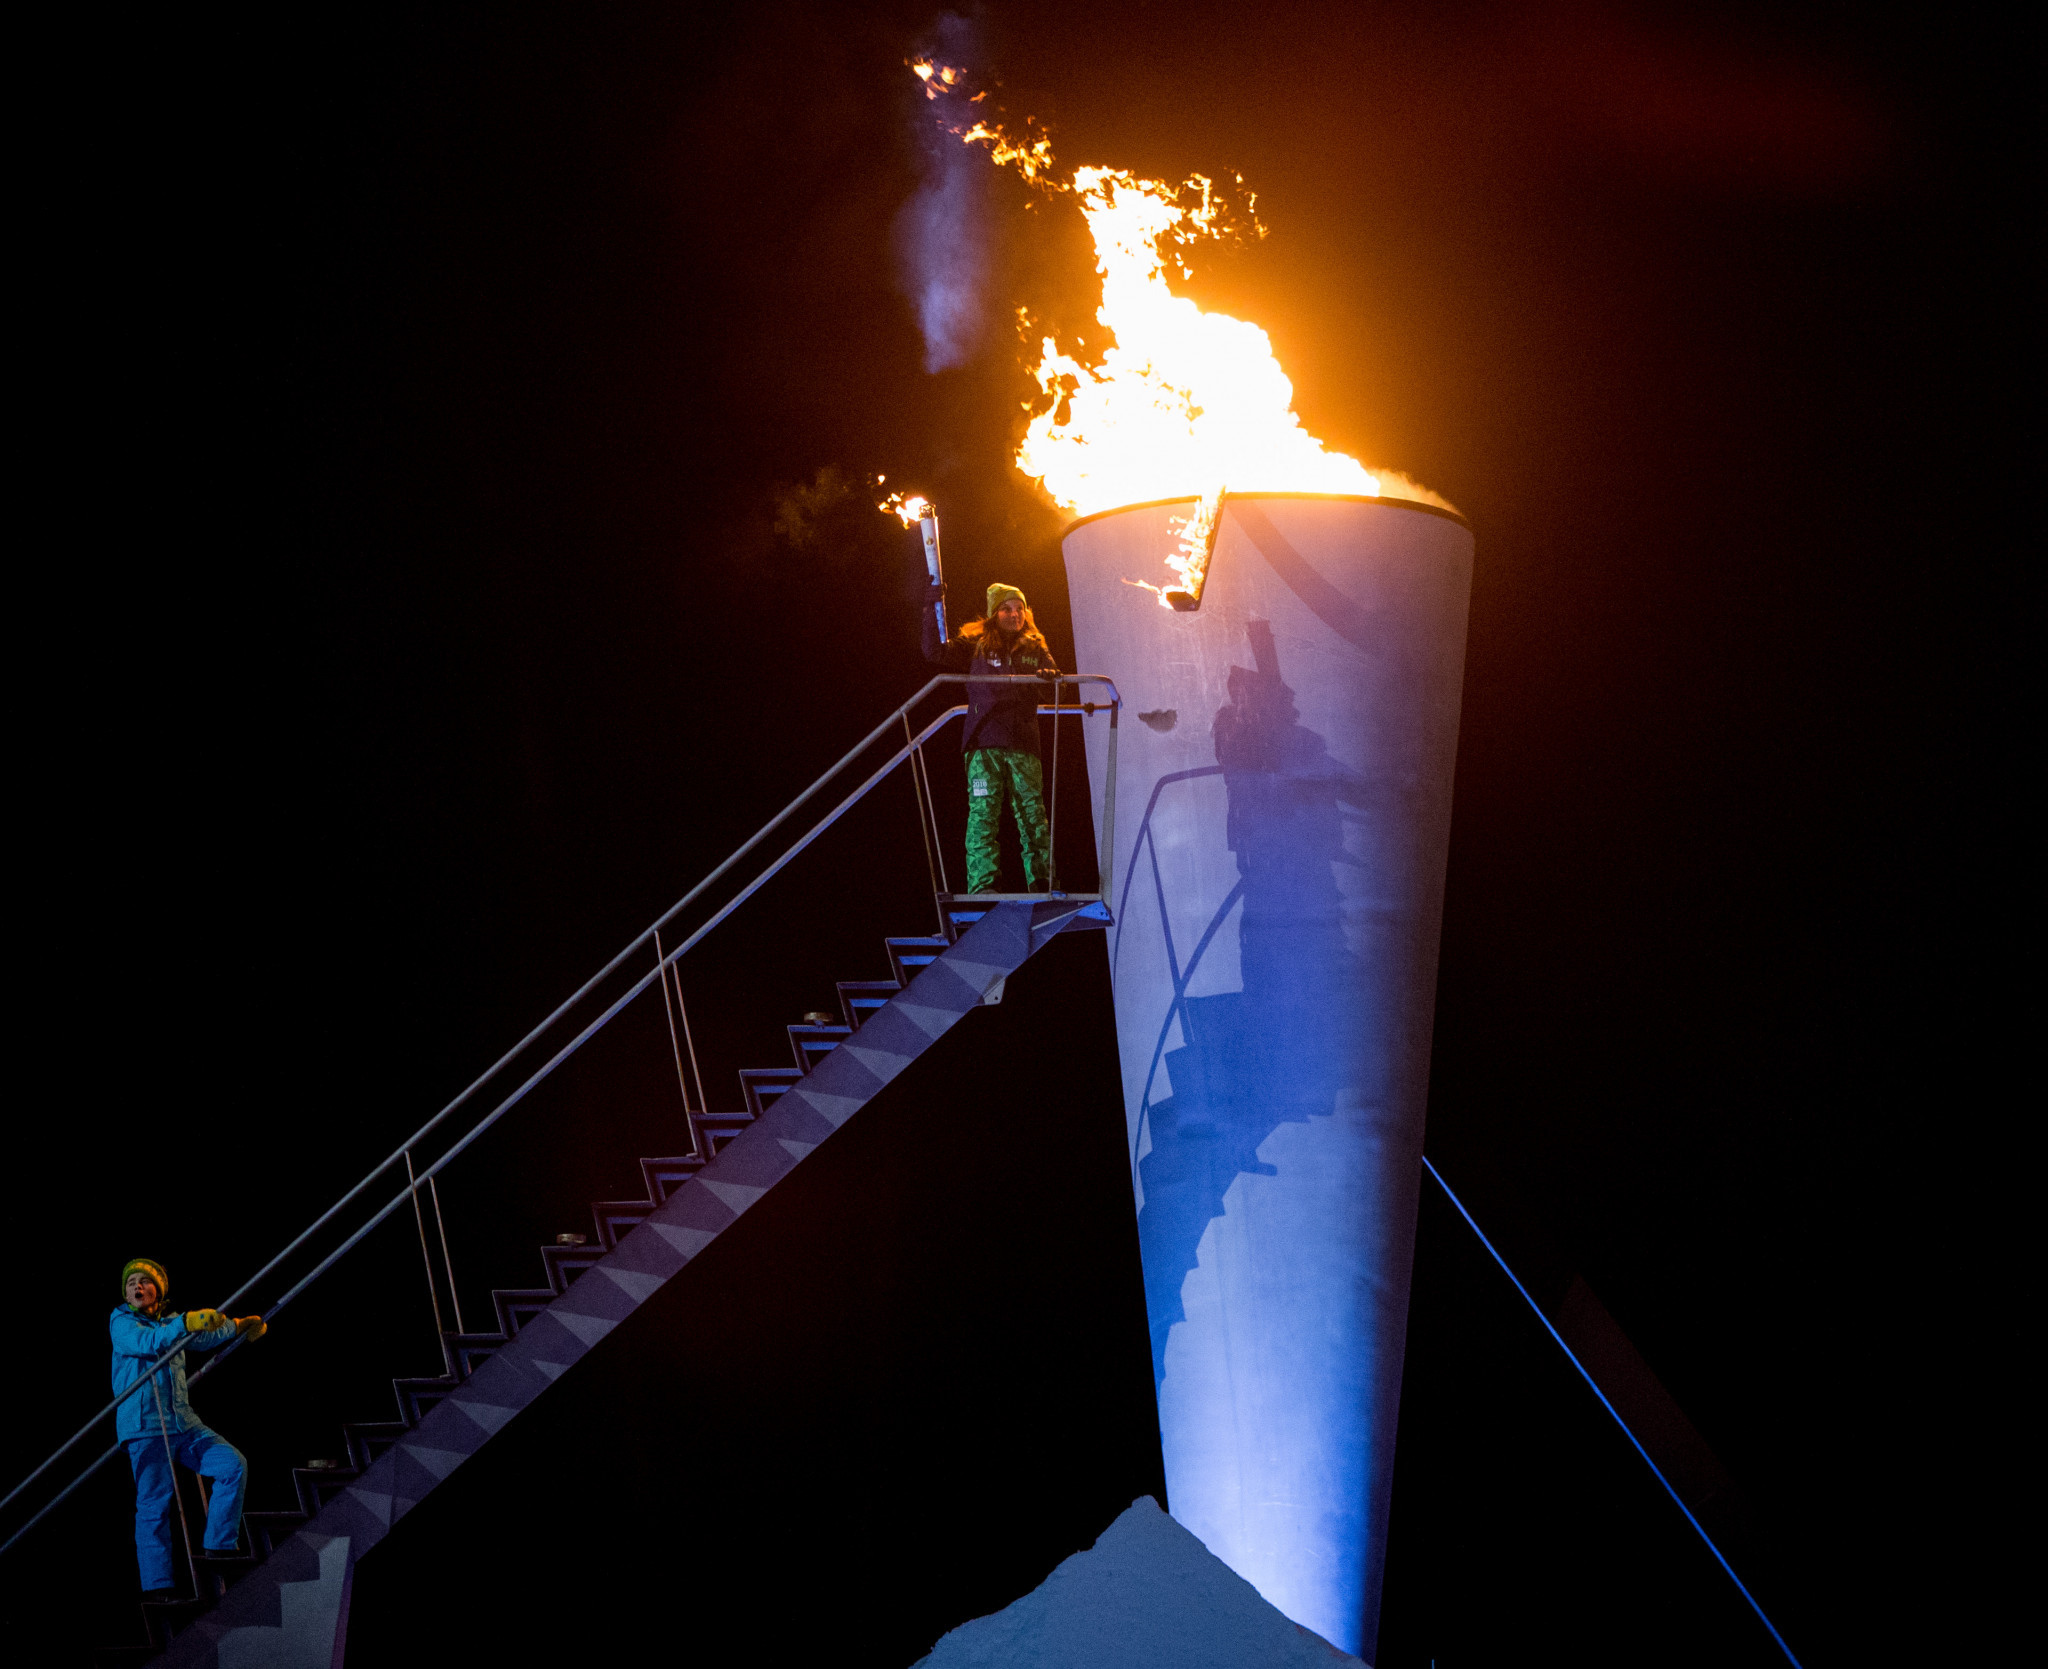 Princess Ingrid Alexander of Norway lit the Lillehammer 2016 flame ©Getty Images